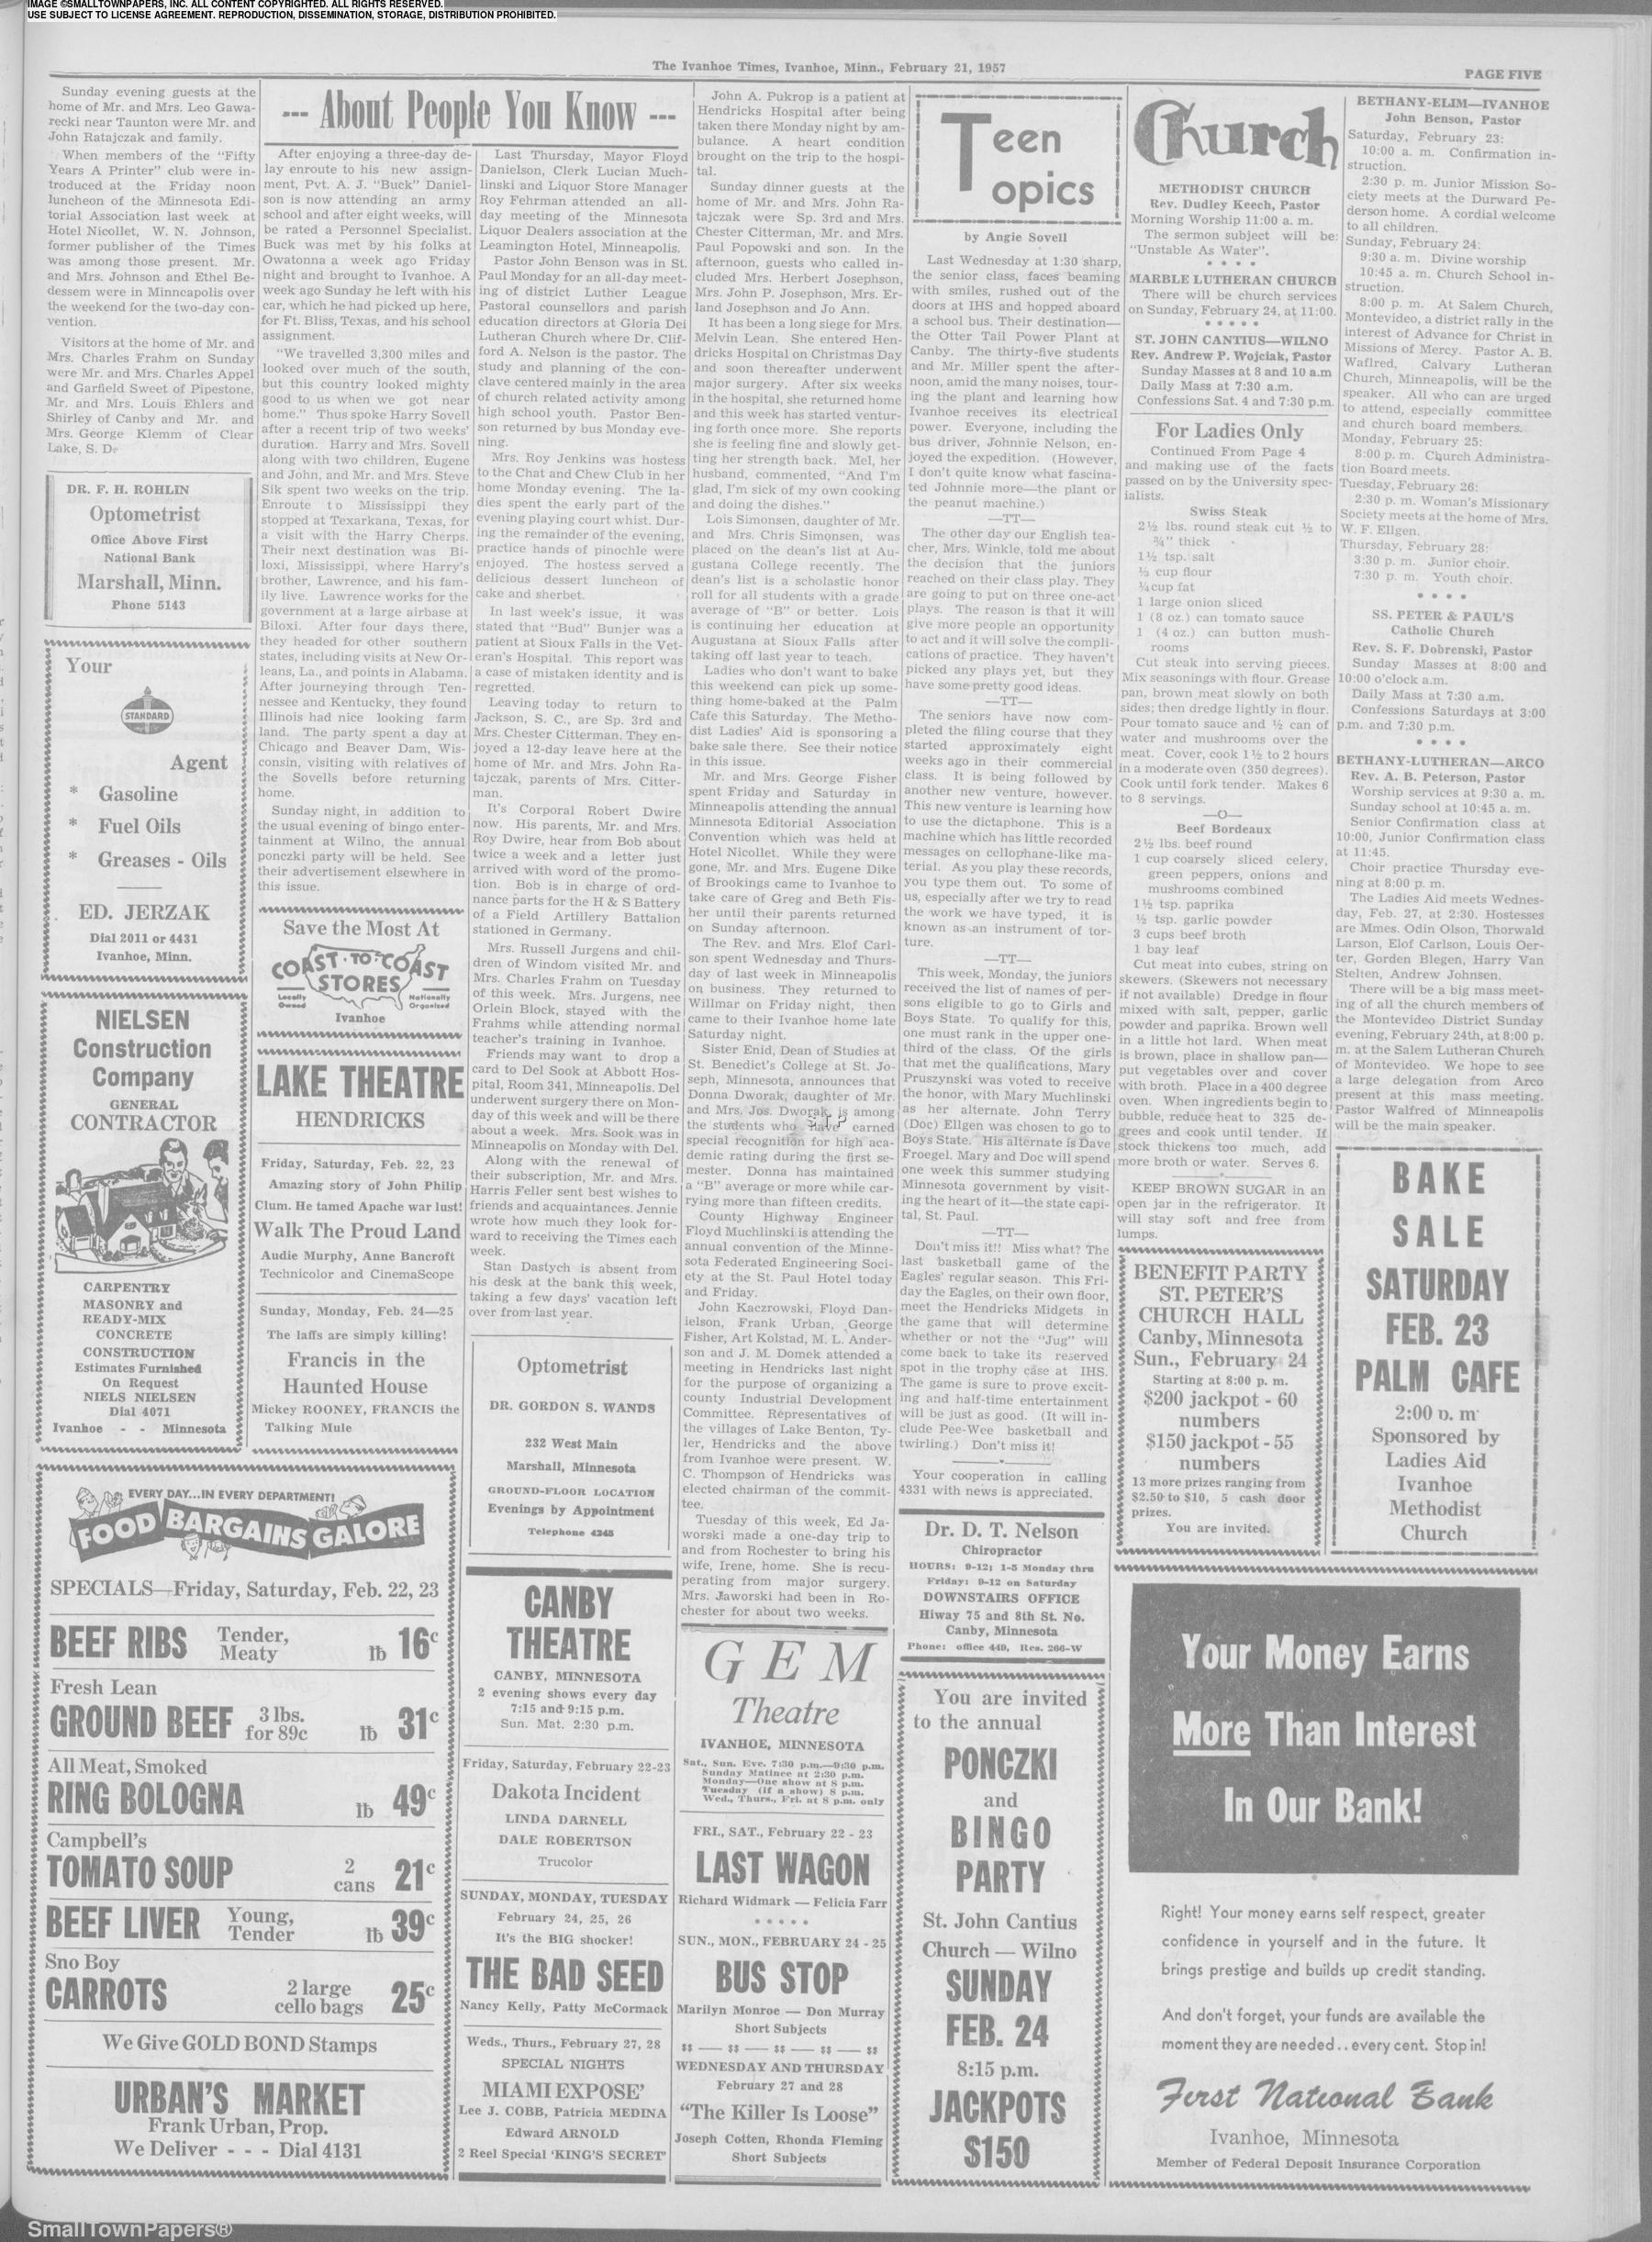 Ivanhoe Times February 21, 1957: Page 5